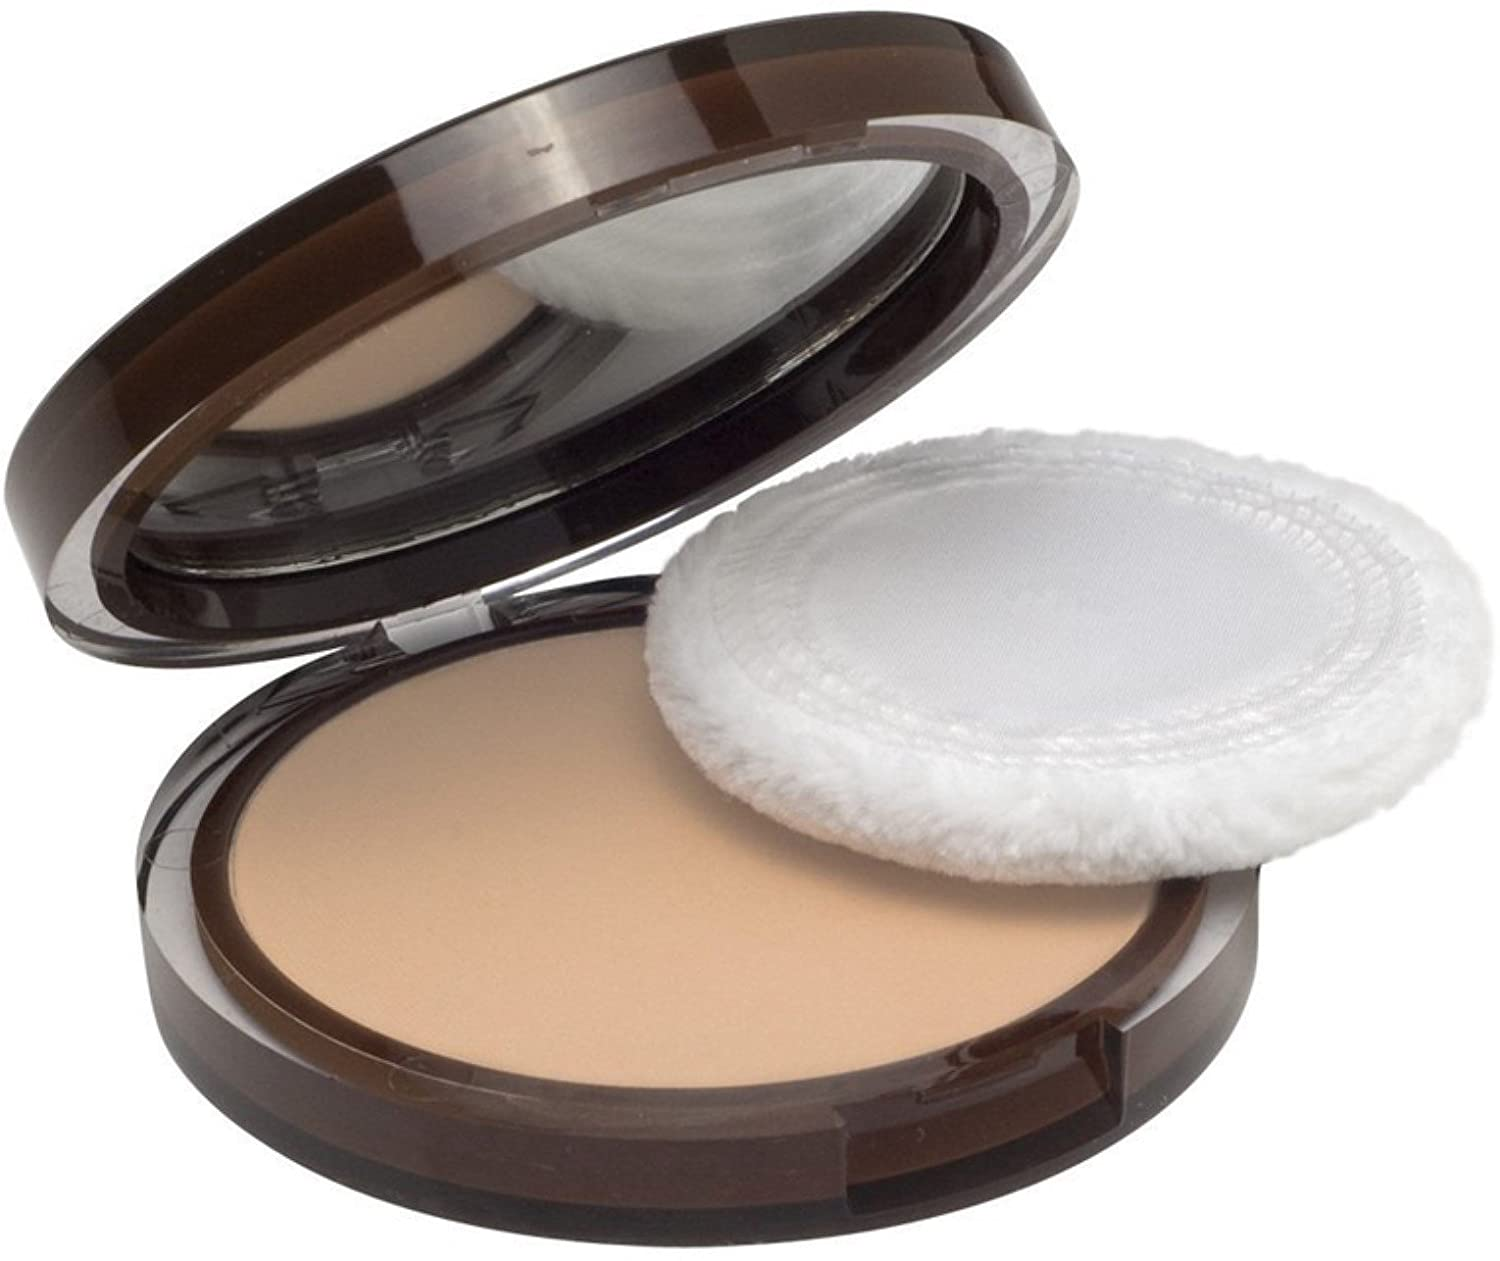 CoverGirl Clean Pressed Powder Compact, Classic Tan [160], 0.39 oz